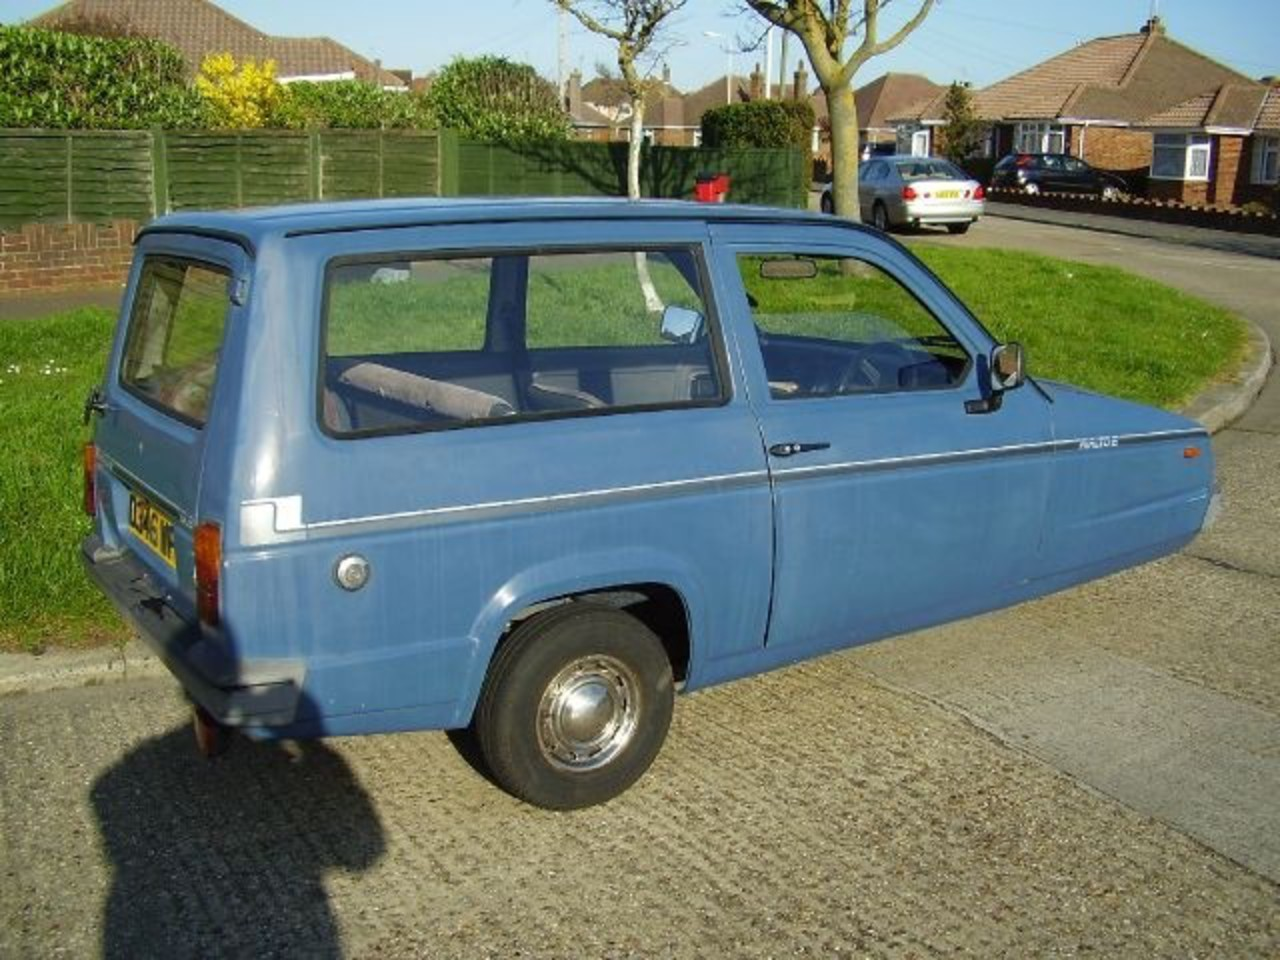 Reliant Rialto Rialto GLS Estate Tricycle for sale in Worthing ...